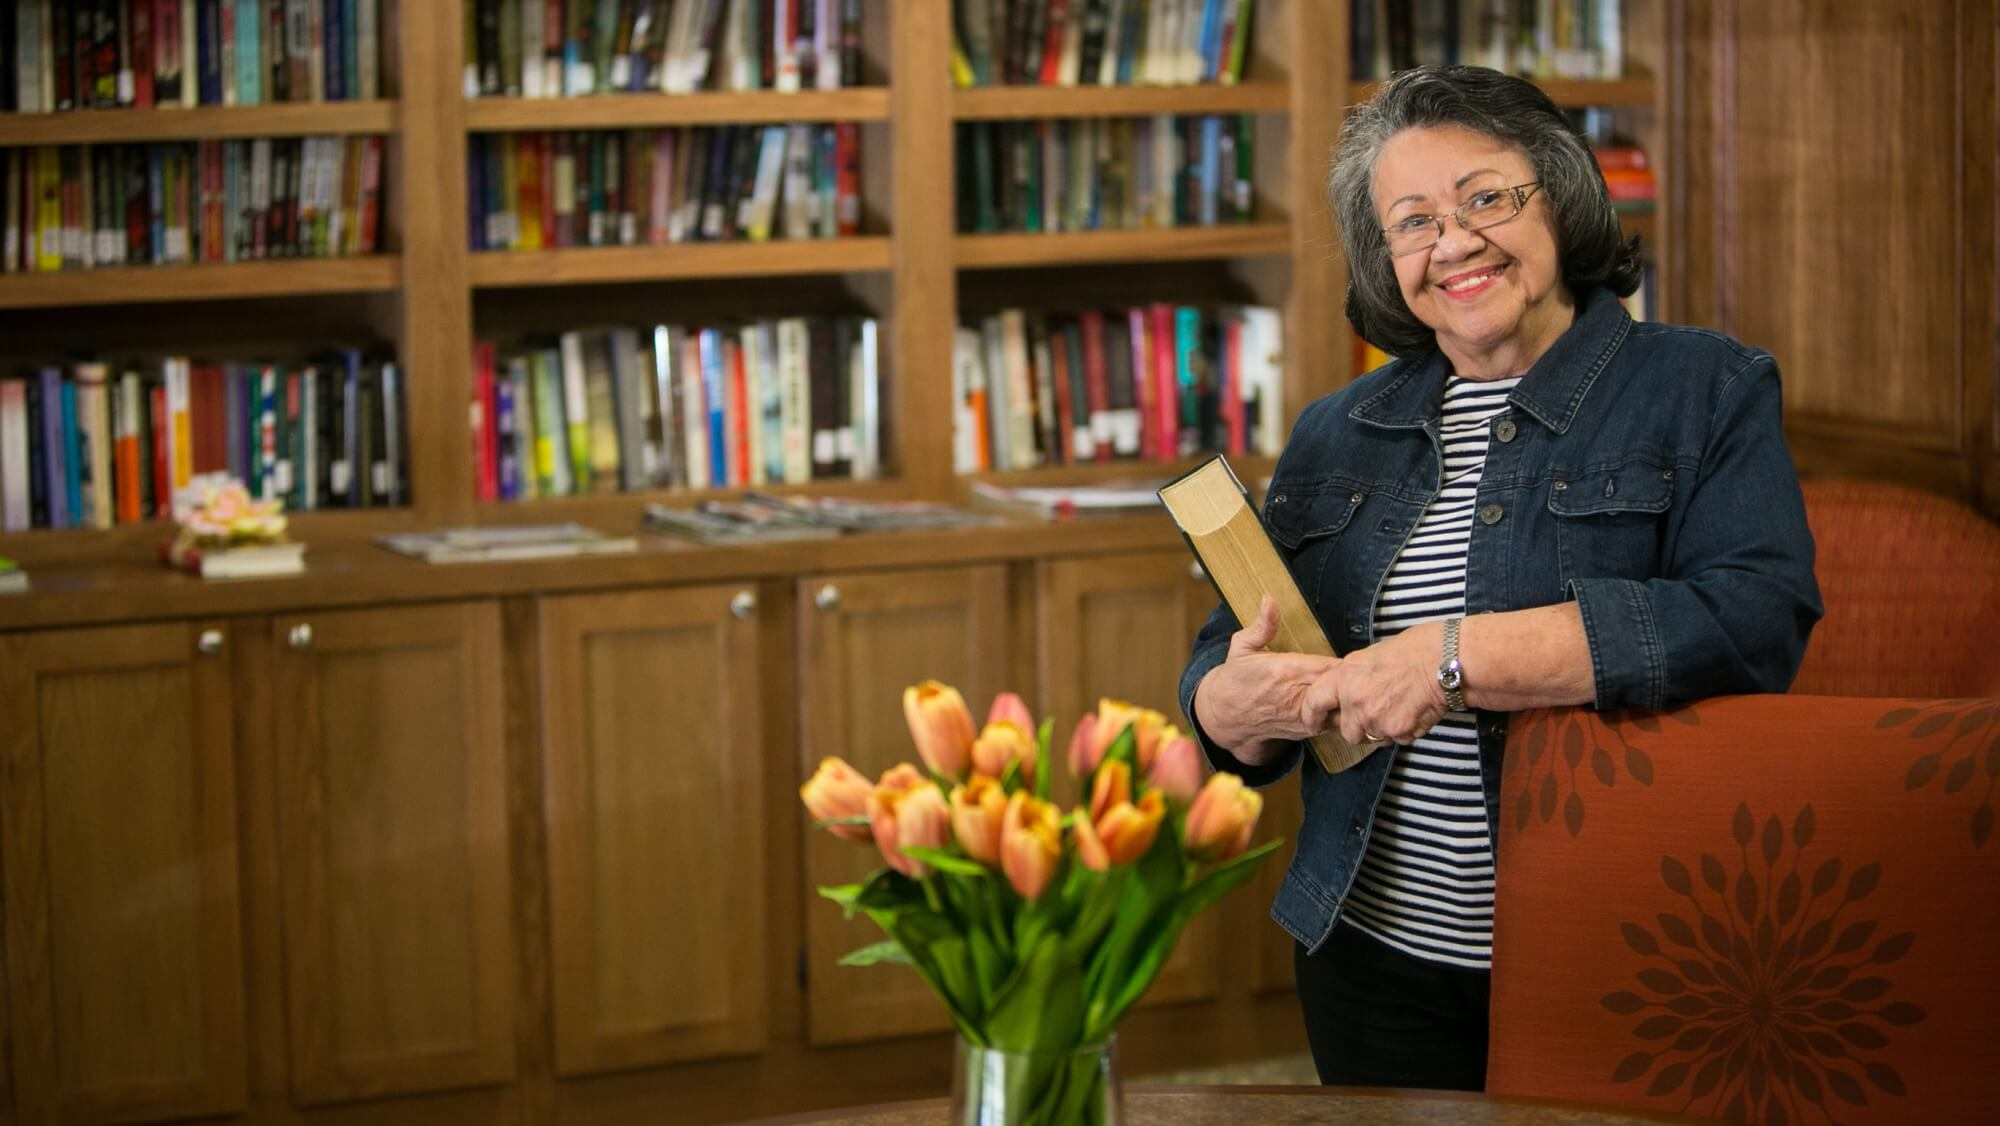 Senior holding a book in Emerald Oaks Library.